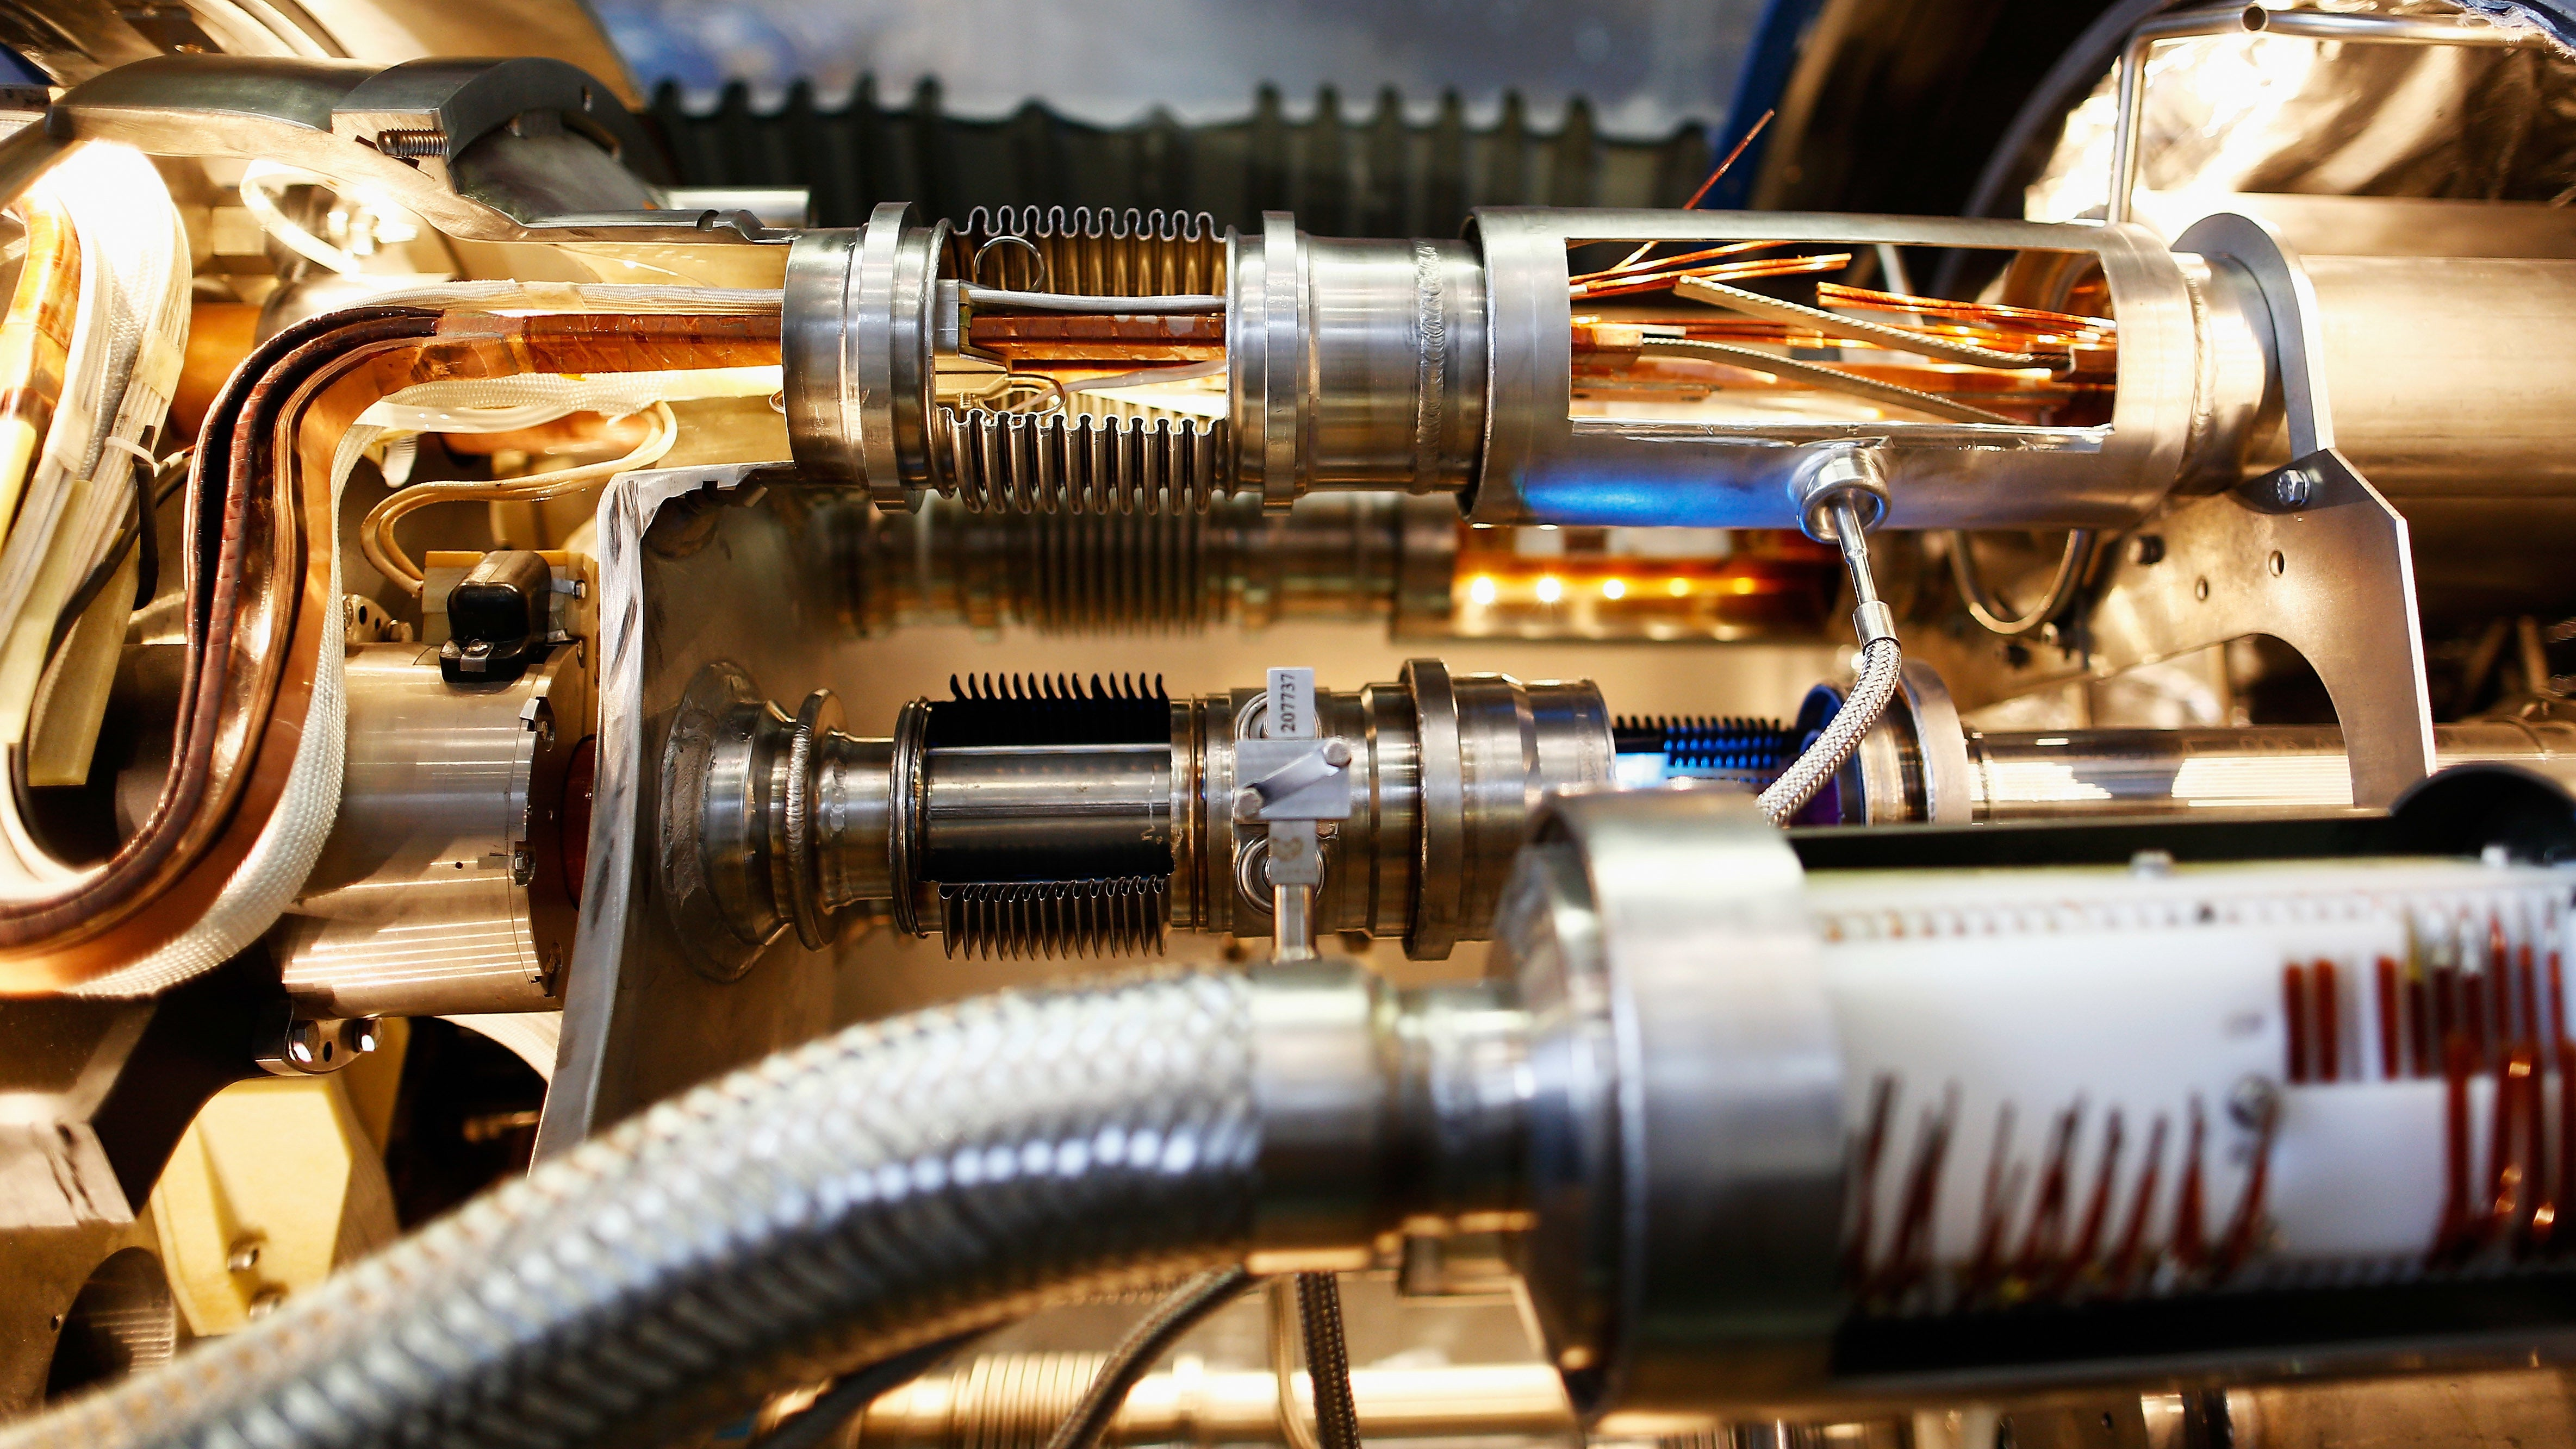 What Does A Particle Collider Sound Like?